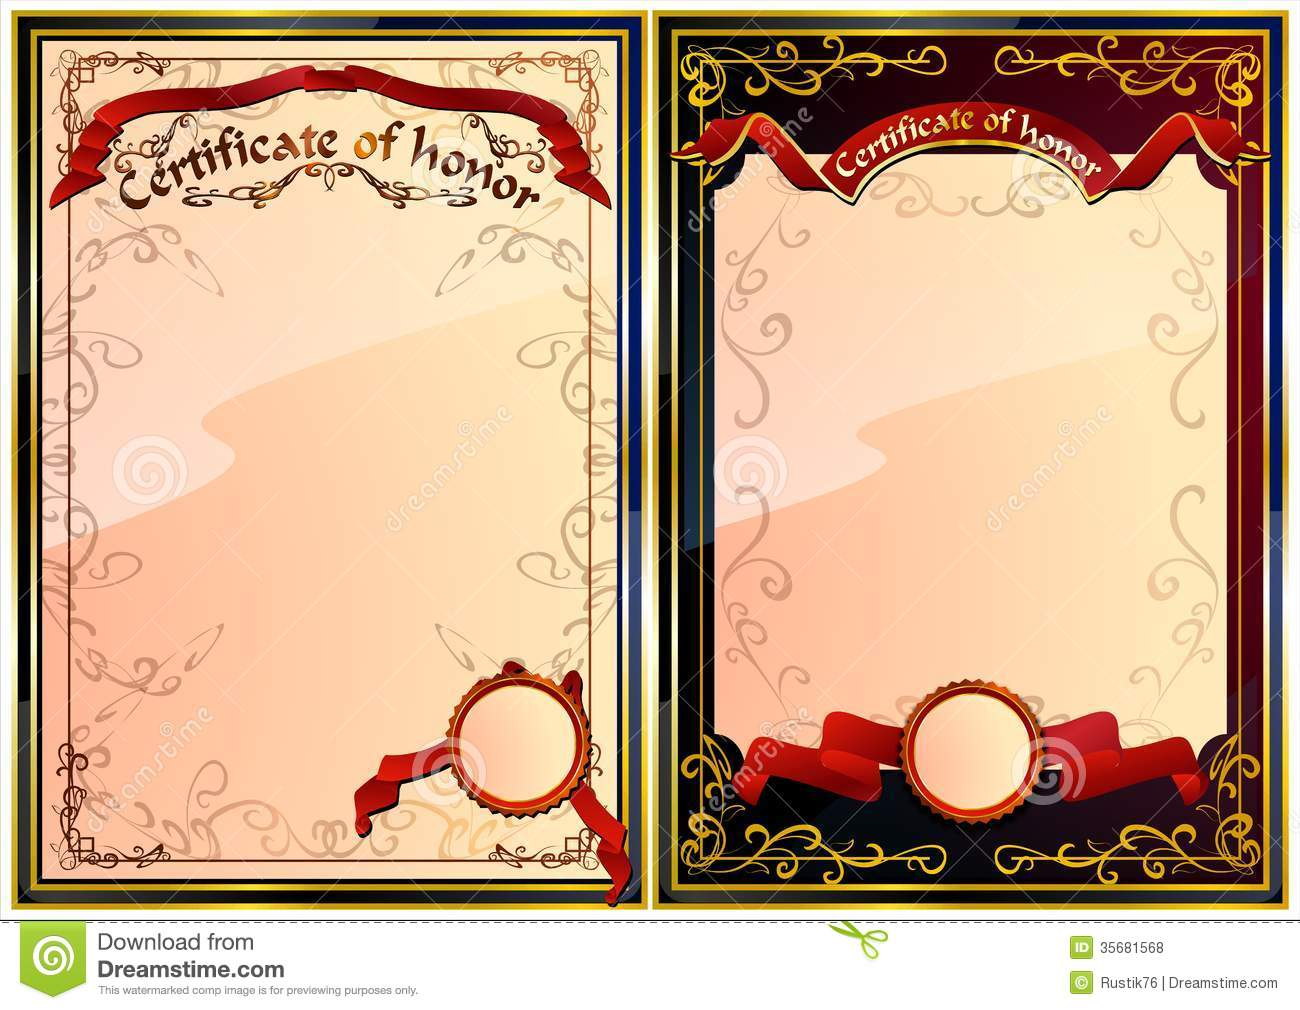 Set Of Certificate Of Honor. 02 (Vector) Royalty Free Stock Photos - Image: 35681568